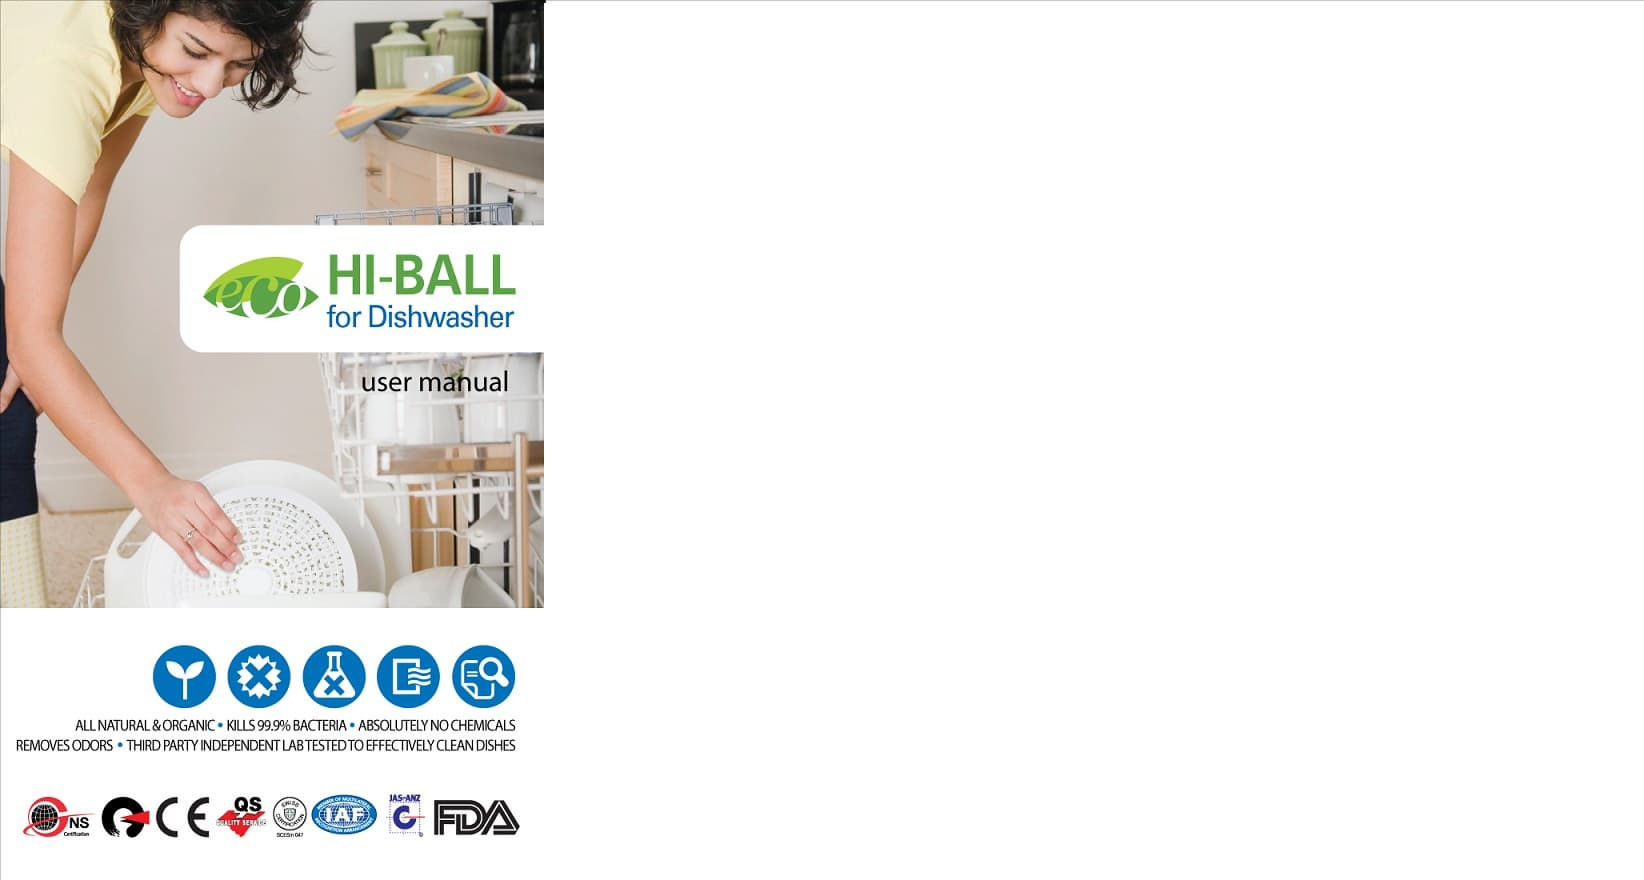 ECO Hi_Ball for Dish_washer